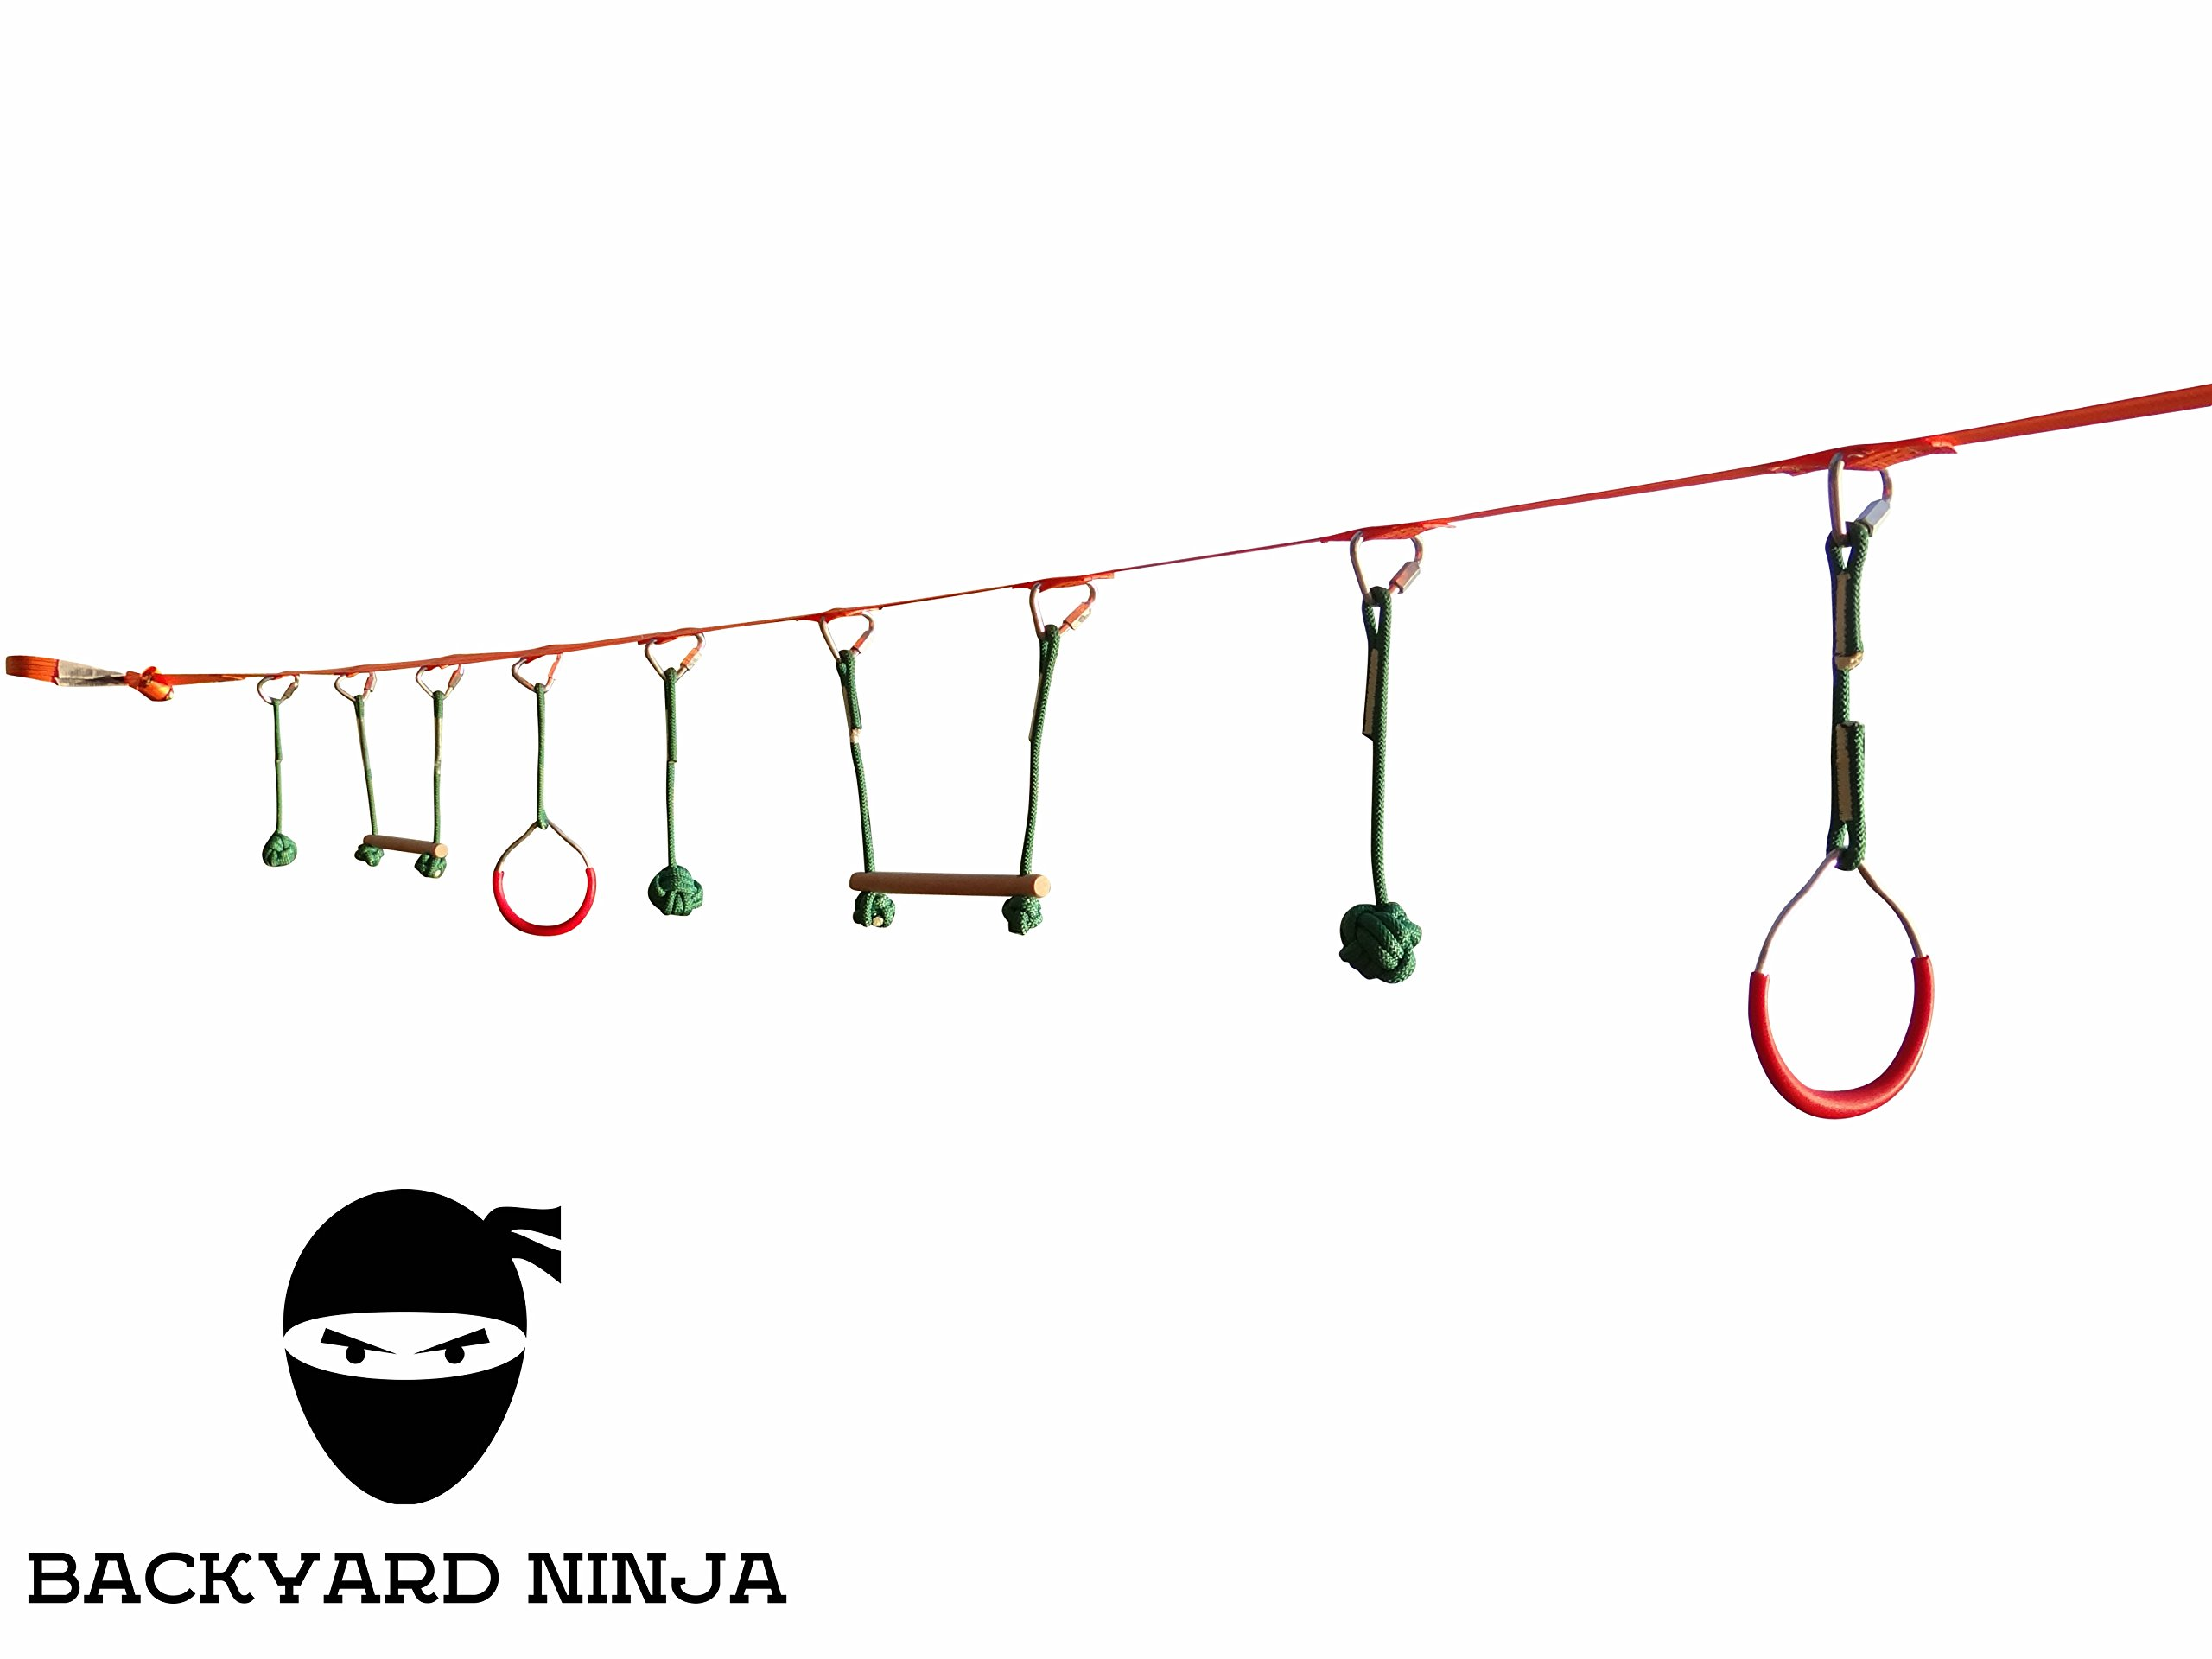 Backyard 45 Foot Ninja Obstacle Course   Inspired By American Ninja Warrior Training Equipment   Slackline Swinging Monkey Bars Includes Hanging Obstacles For Kids   Carrying bag And Tree Protectors